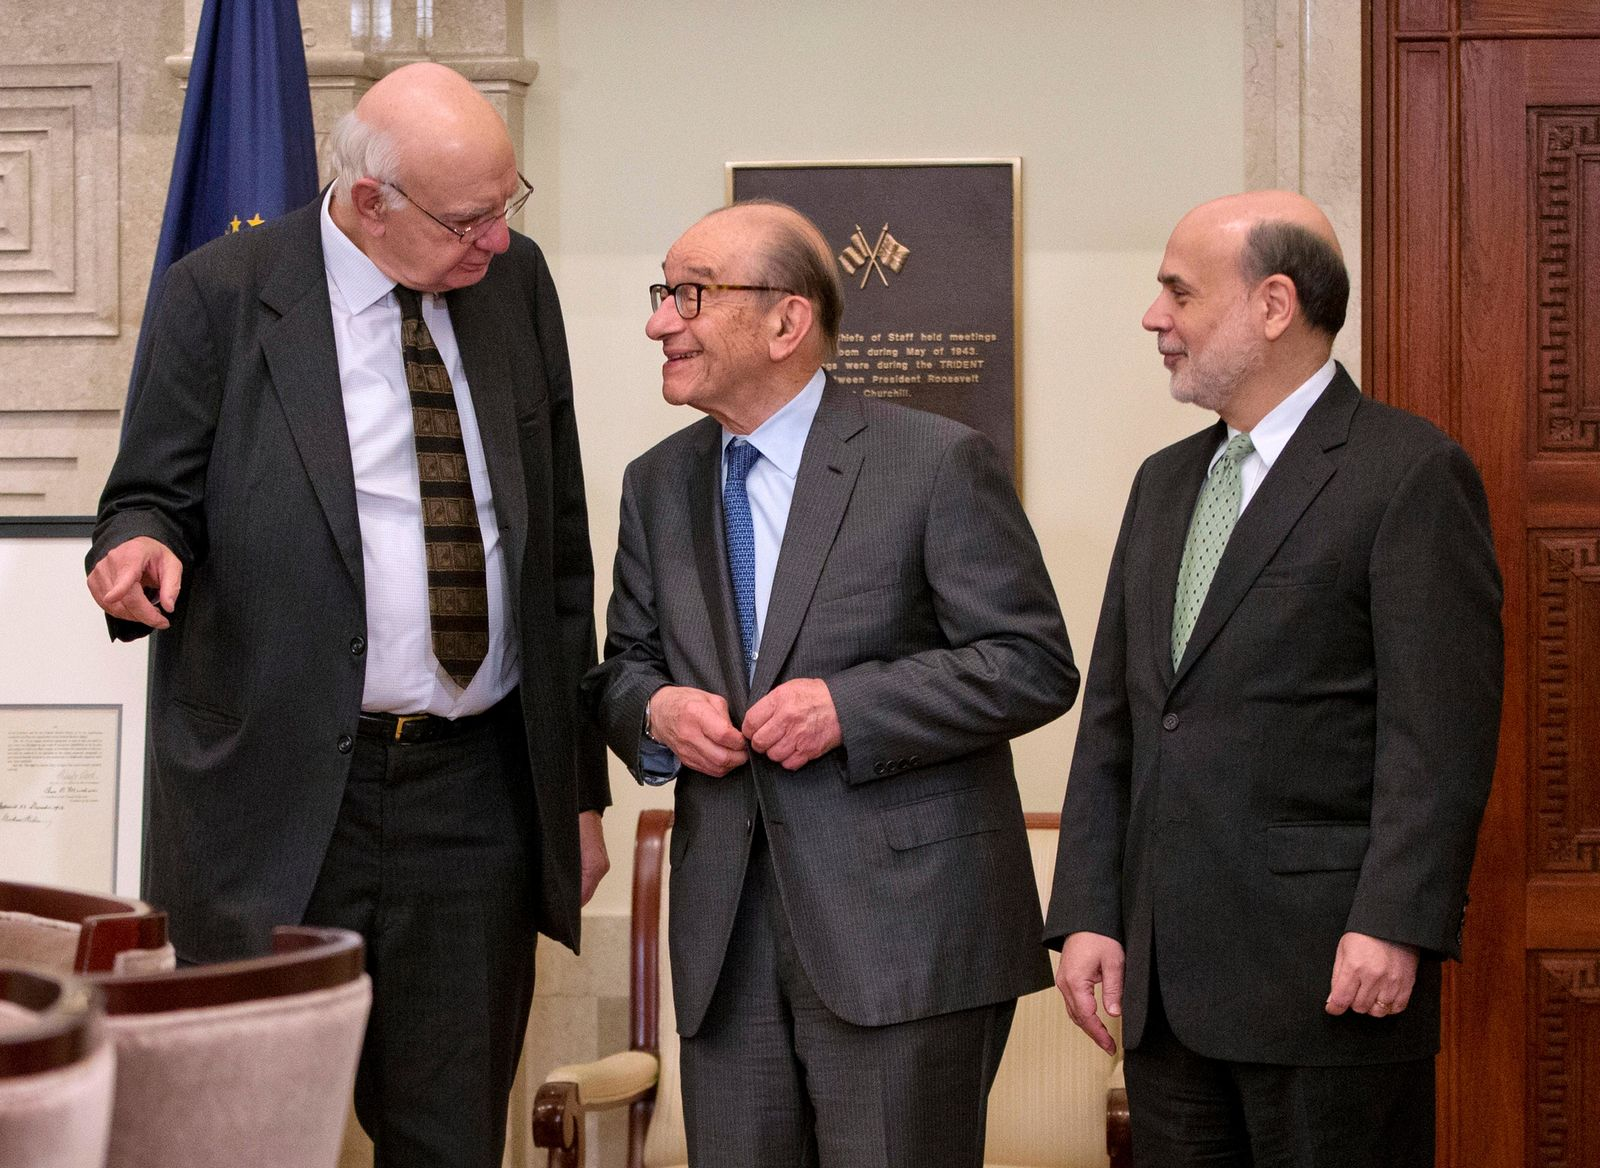 FILE - In this Dec. 16, 2013, file photo Federal Reserve Board Chairman Ben Bernanke, right, with former chairmen Paul Volcker, left, and Alan Greenspan, talk after participating in the ceremonial signing of a certificate commemorating the 100th anniversary of the signing of the Federal Reserve Act at the Federal Reserve Building in Washington. Volcker, the former Federal Reserve chairman died on Sunday, Dec. 8, 2019, according to his office, He was 92.{ }(AP Photo/Pablo Martinez Monsivais, File)